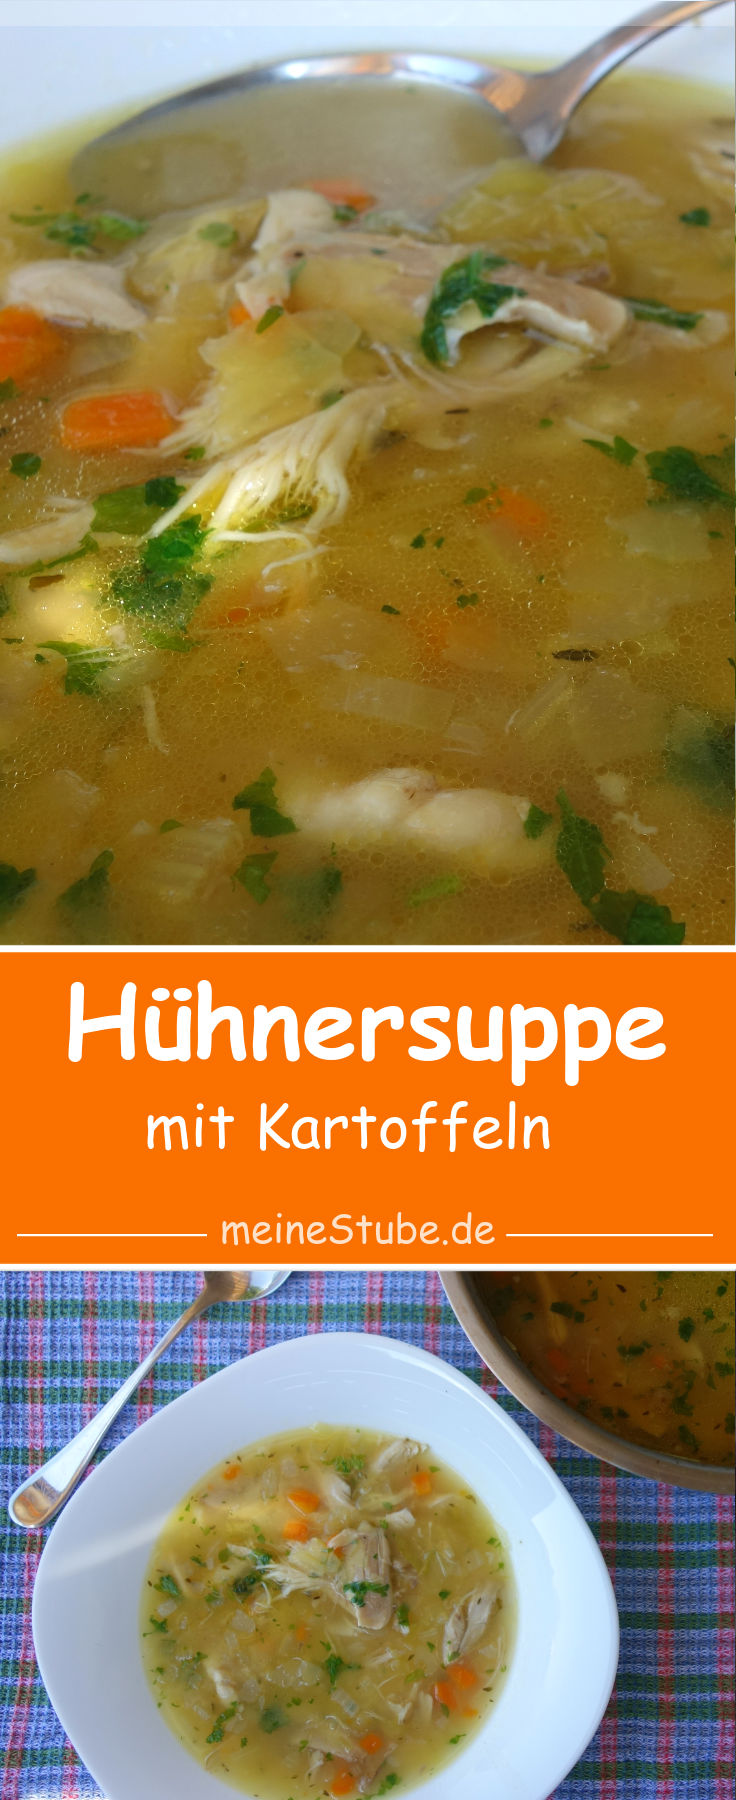 Hühnersuppe mit Kartoffeln mal anders